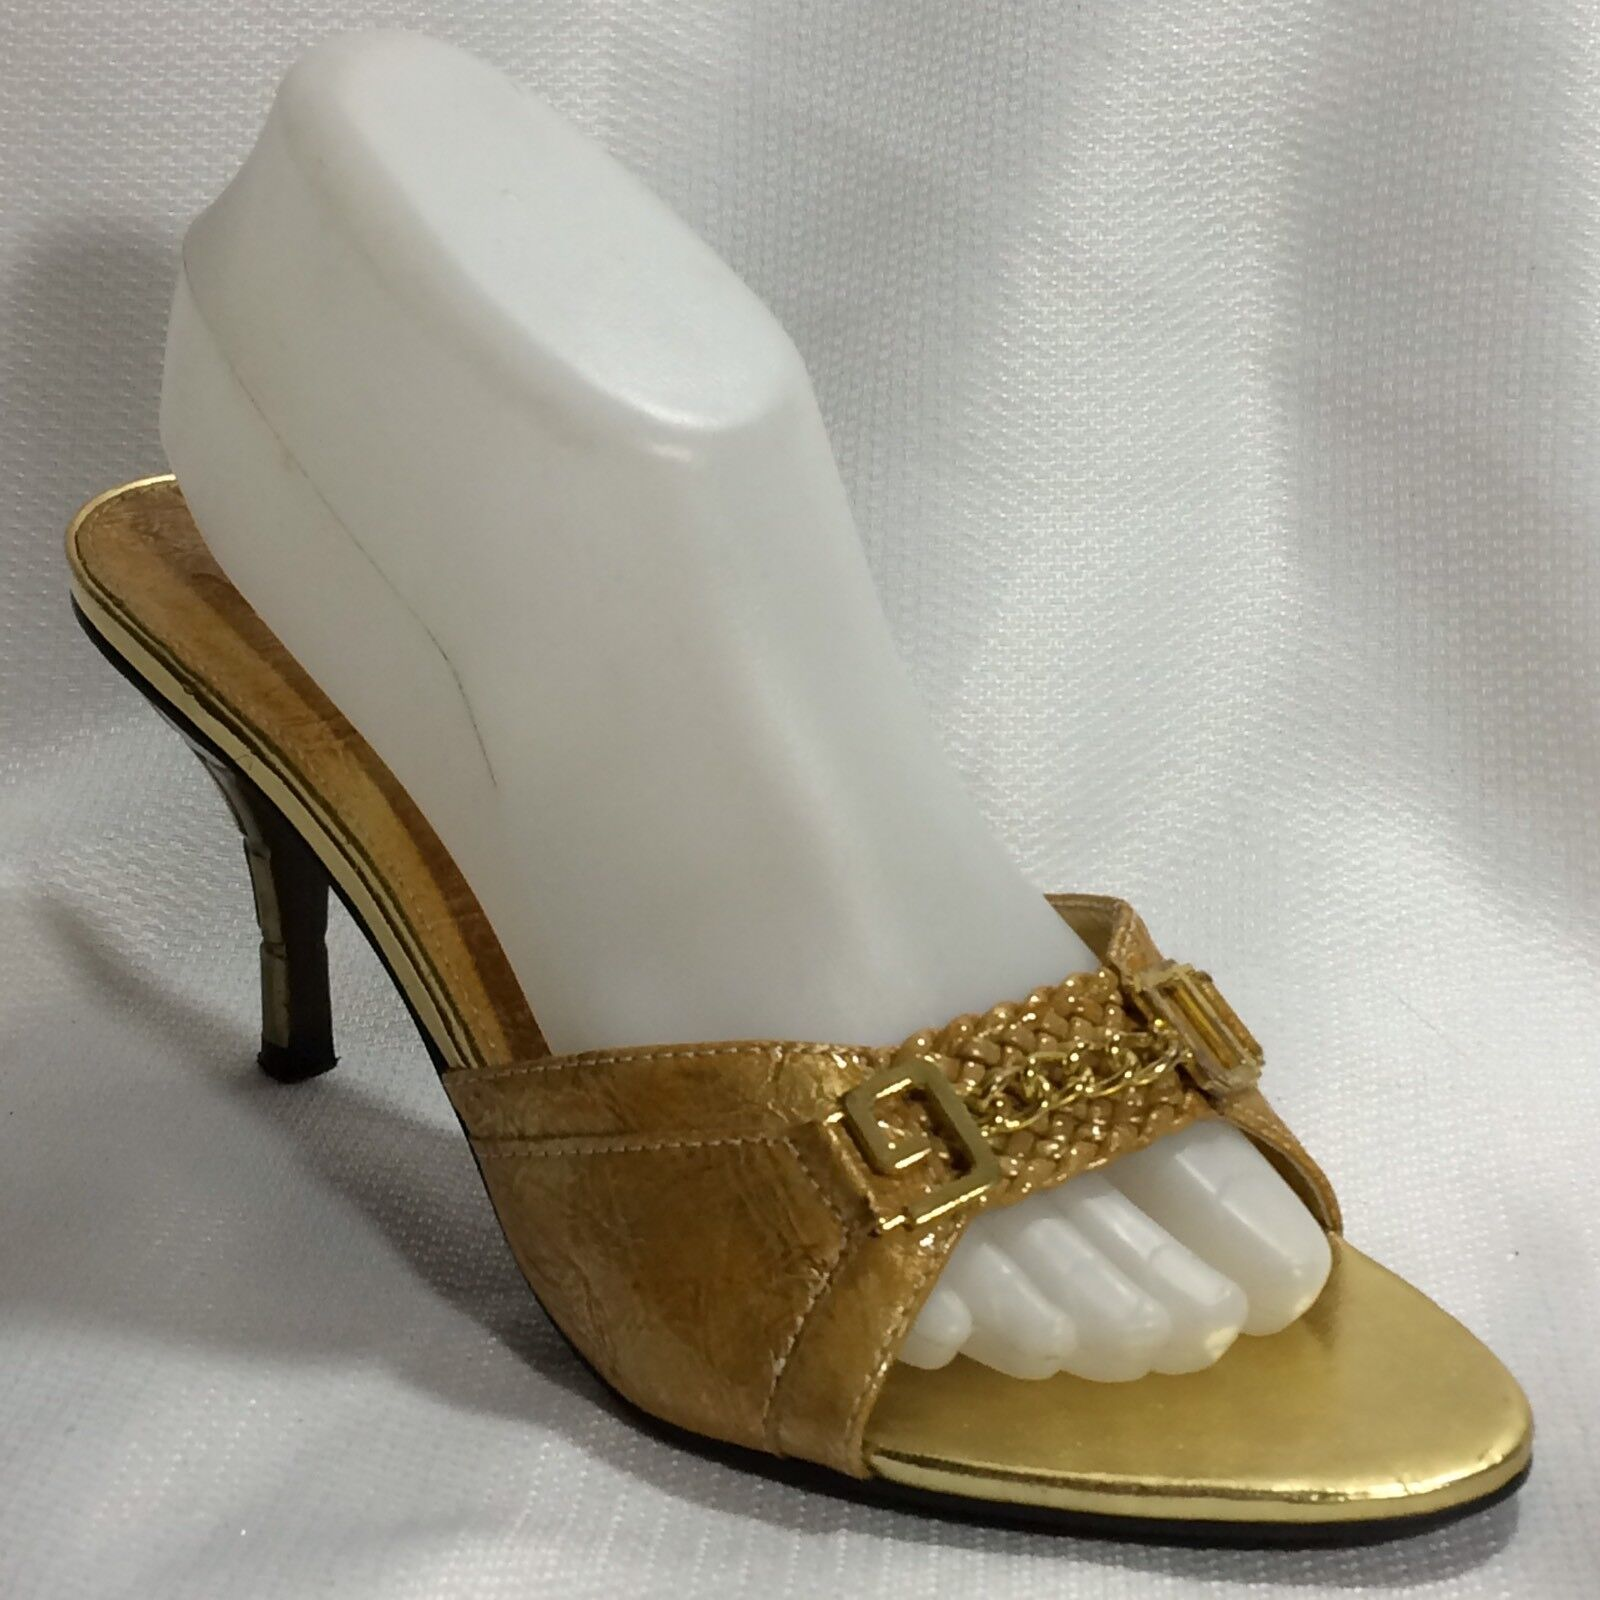 BOLARO by SUMMER RIO gold Slides Stiletto Heel shoes Horse Bit Chain Womens 10 M